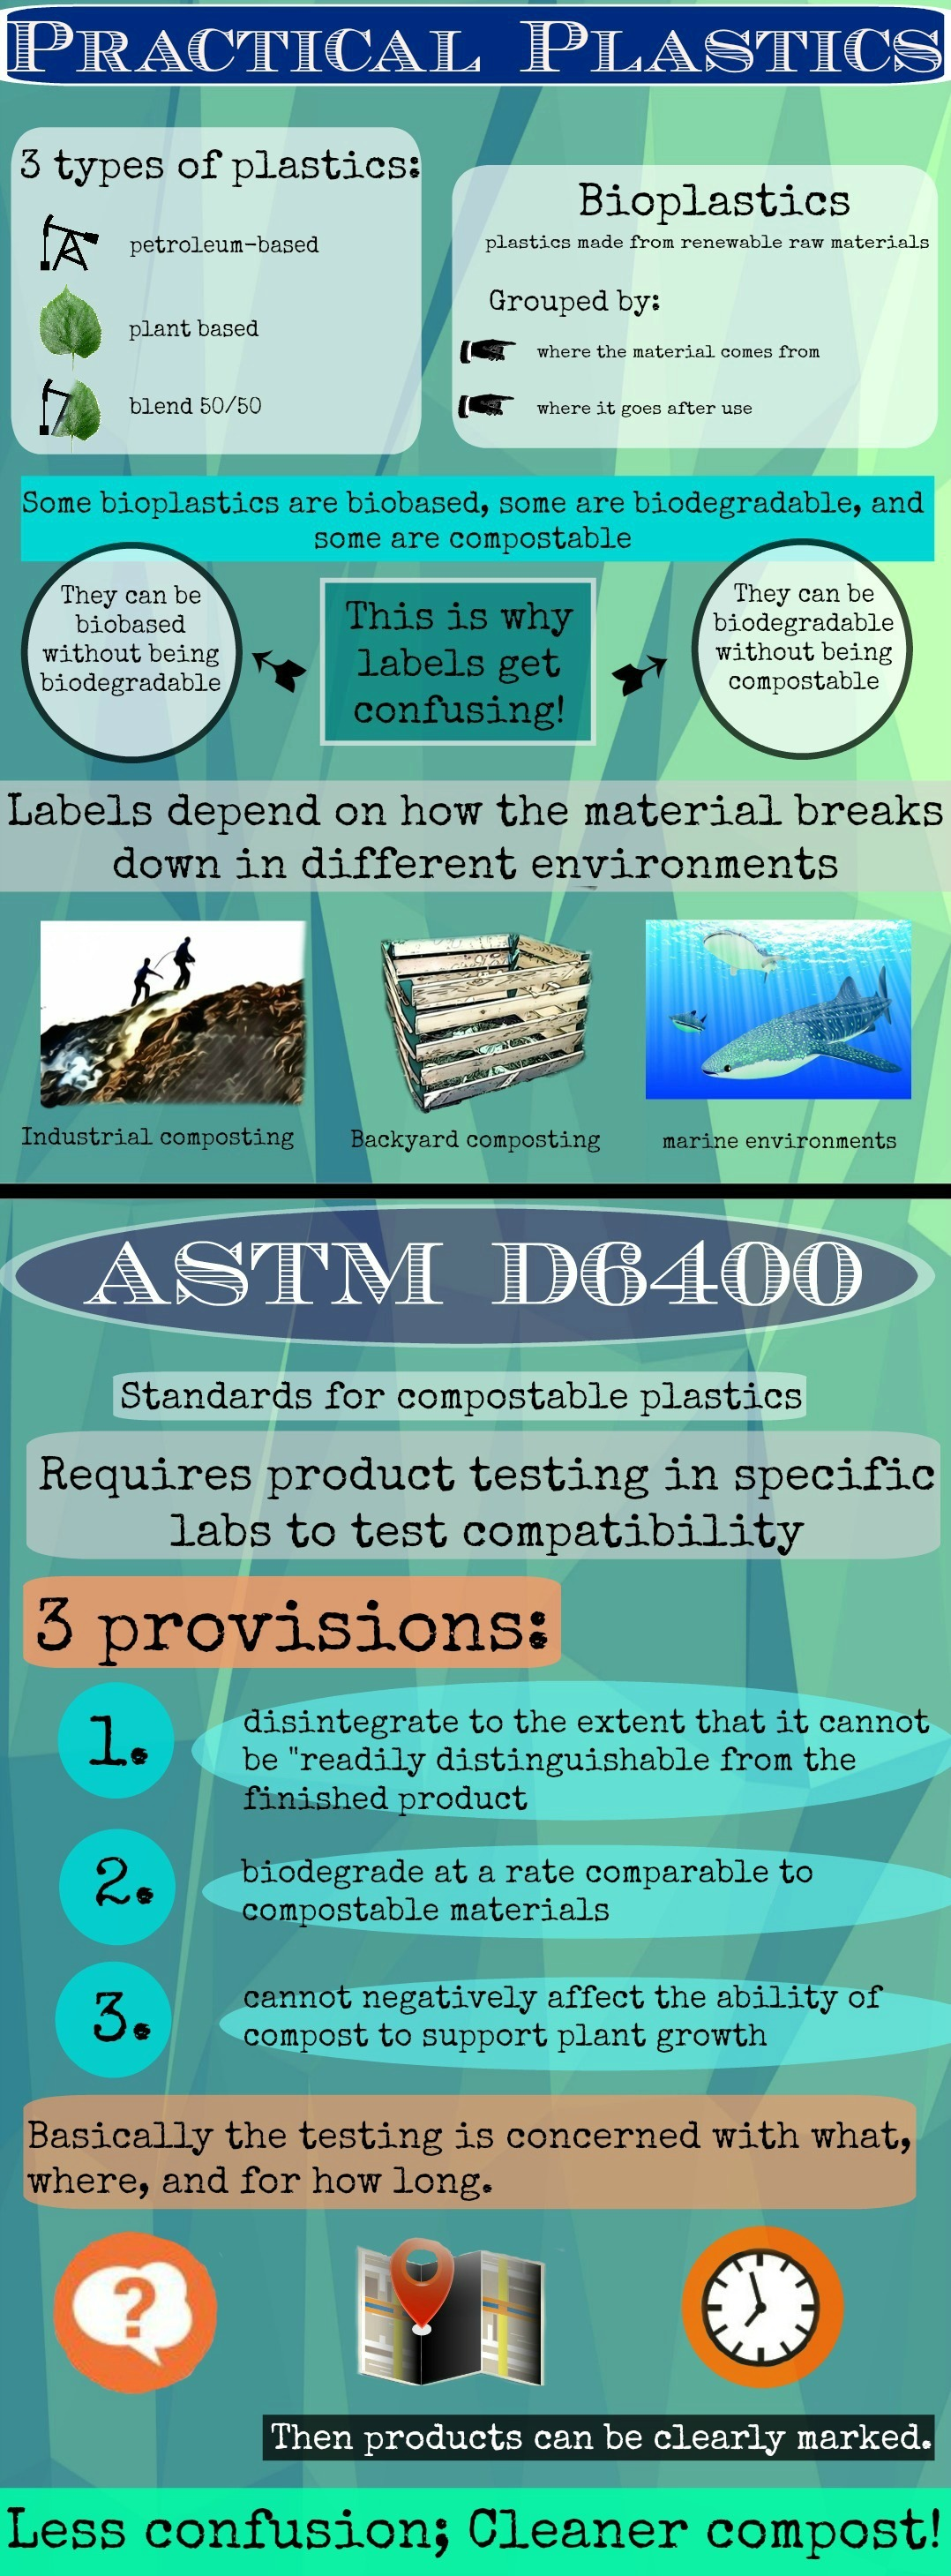 Bioplastics and ASTM D6400